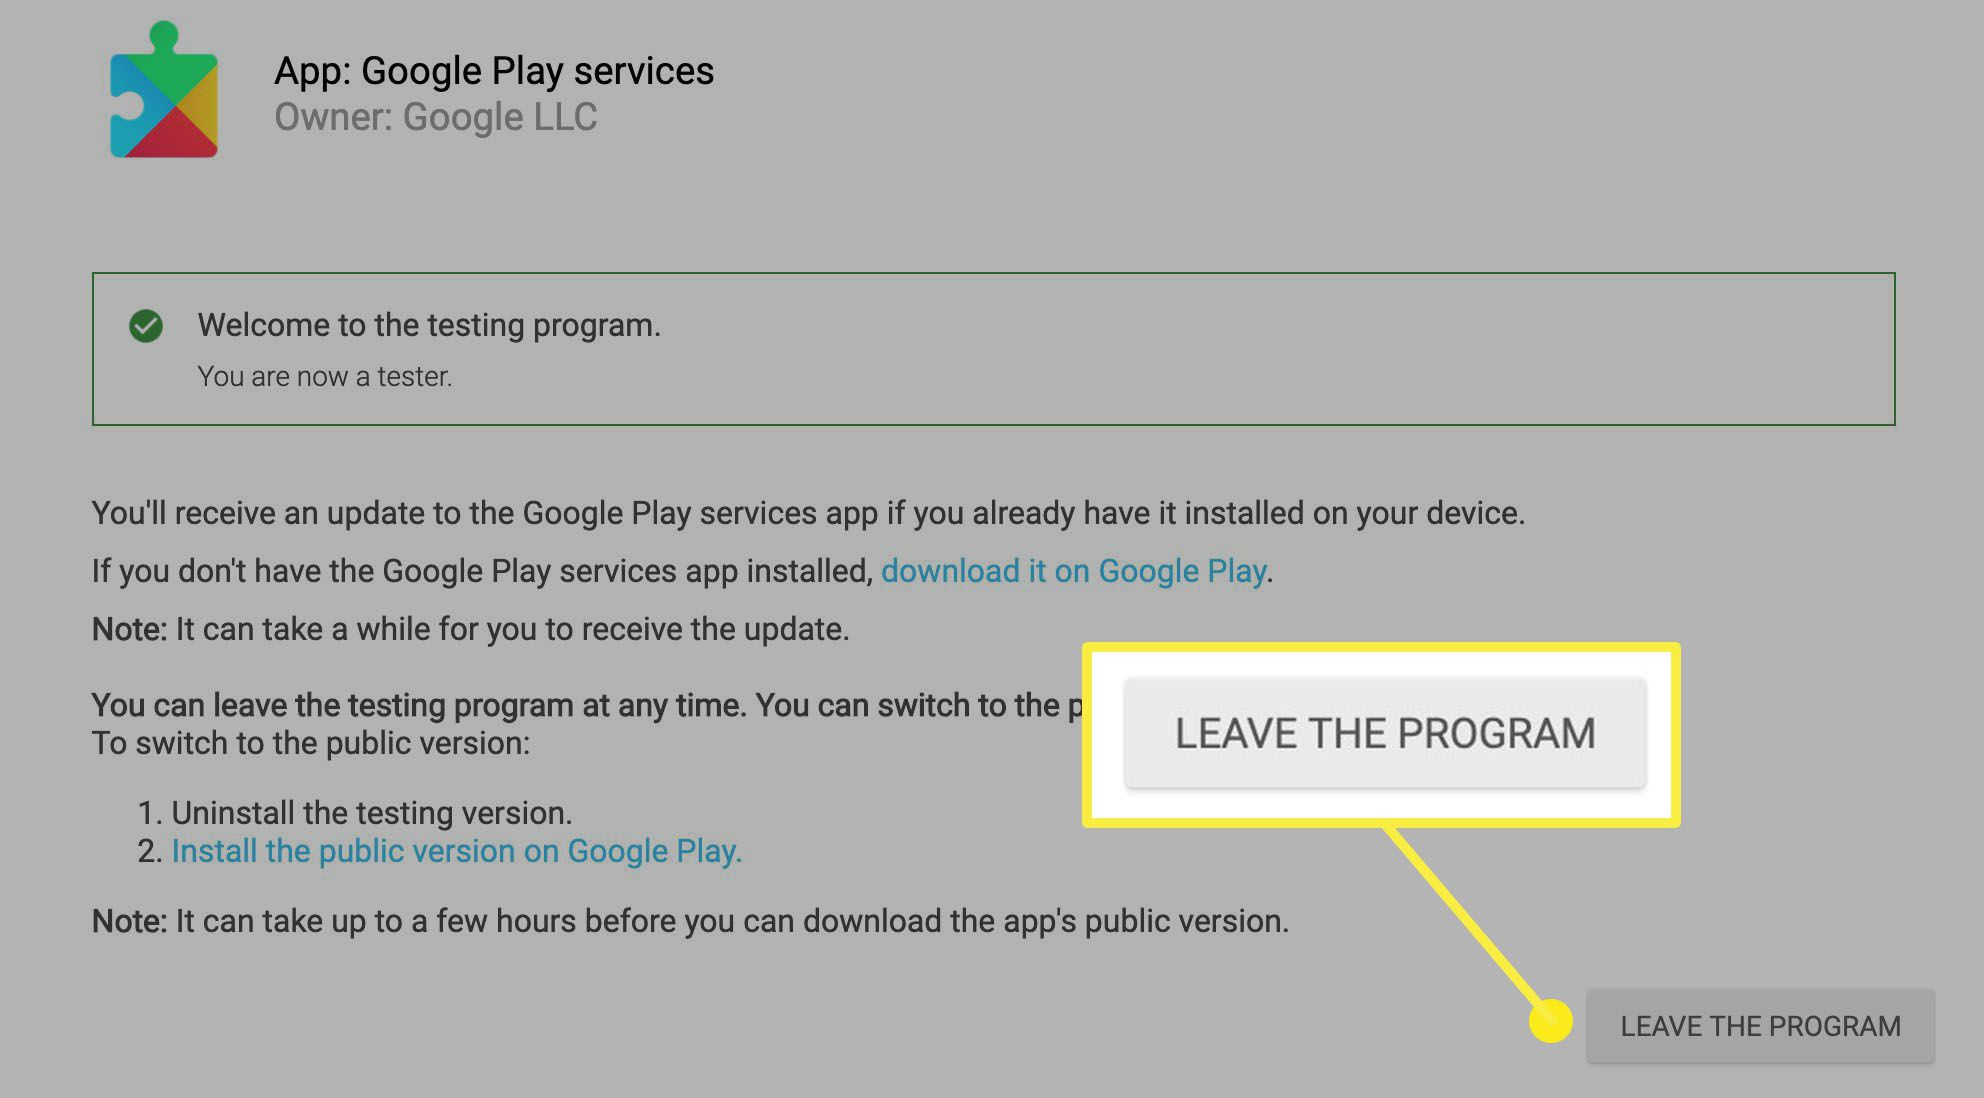 The button to click to leave the testing program in Google Play.